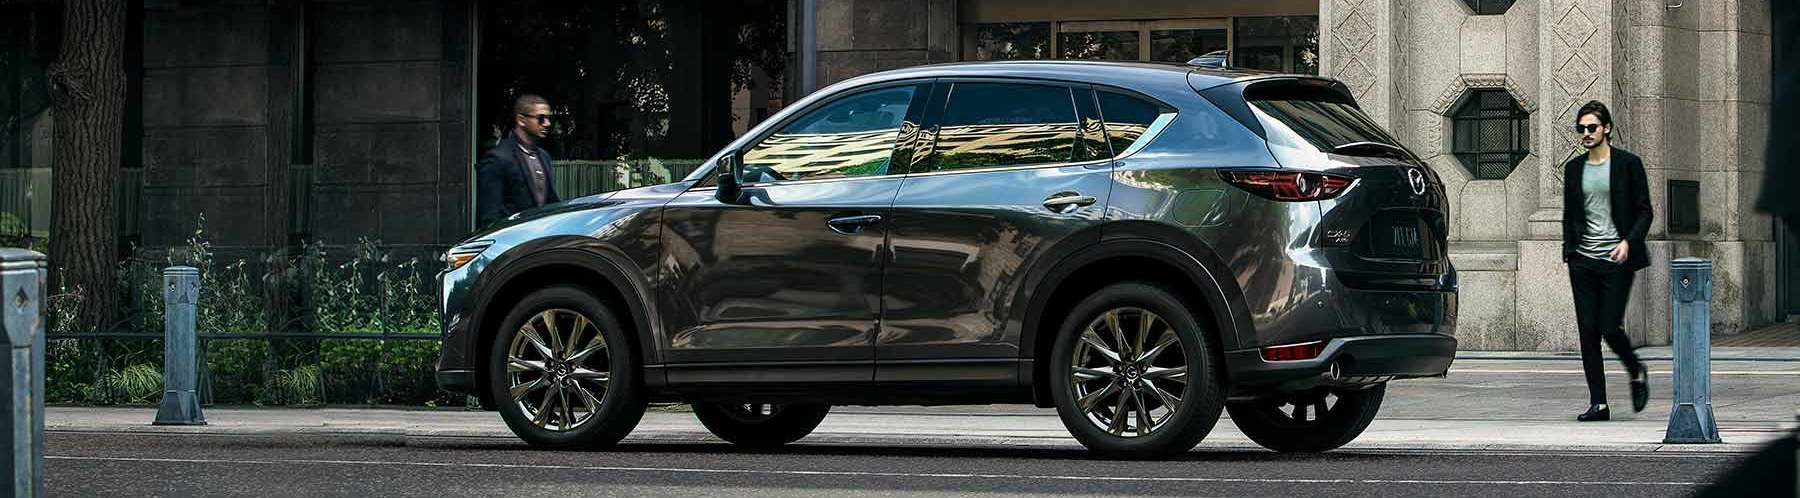 2019 Mazda CX-5 for Sale near Scottsdale, AZ